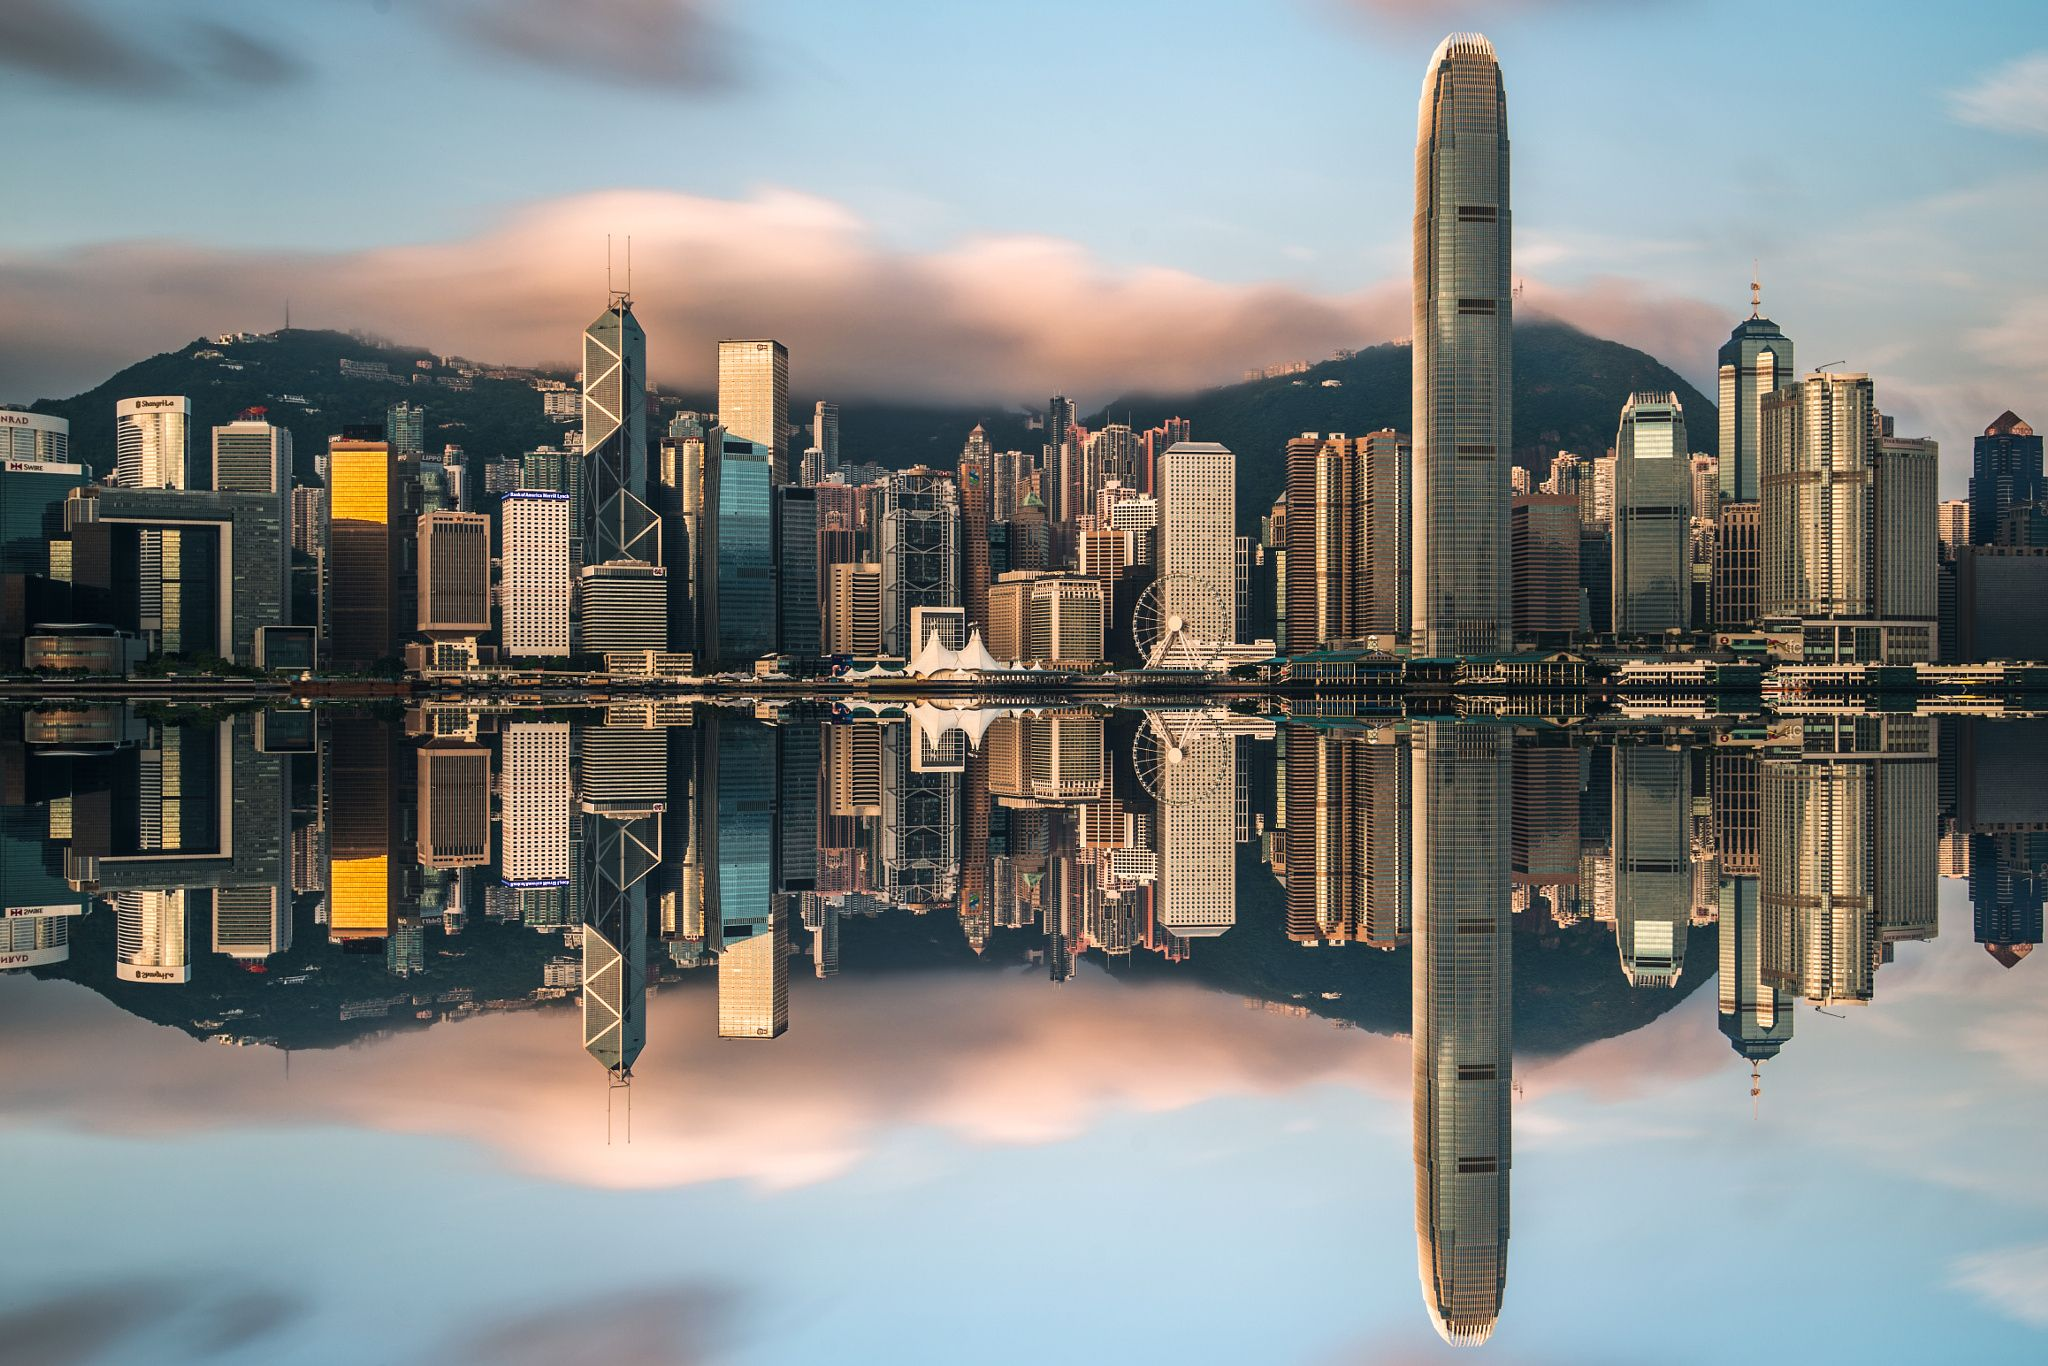 Photograph Sunrise@Victoria Harbour by Cai Wu on 500px, Photograph taken at 6:30 am, Hong Kong, China